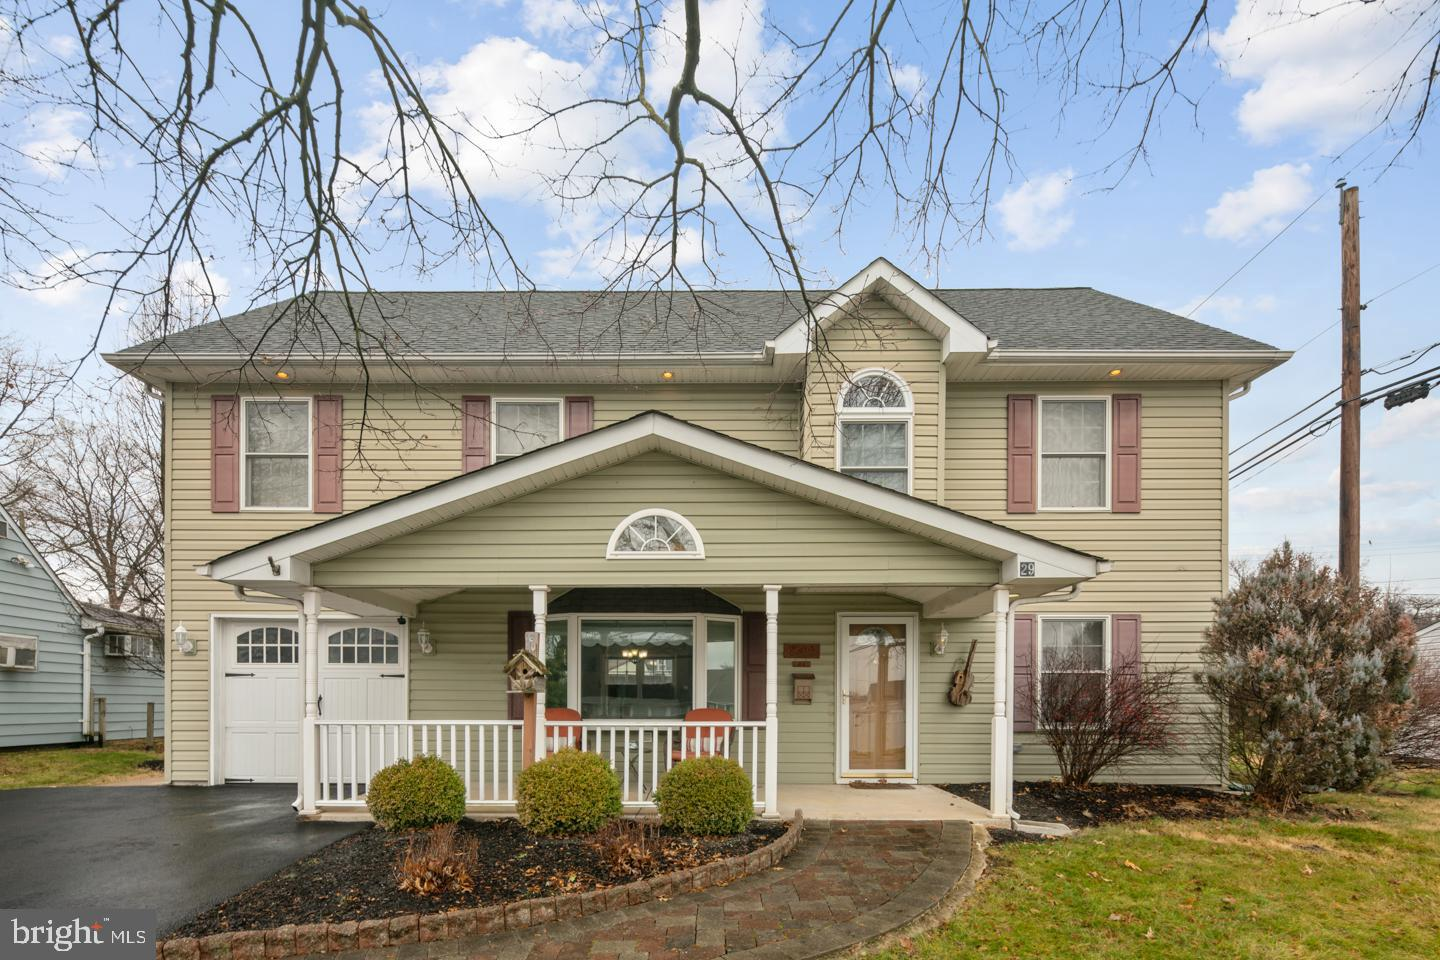 29 VITALOAK LANE, LEVITTOWN, PA 19054